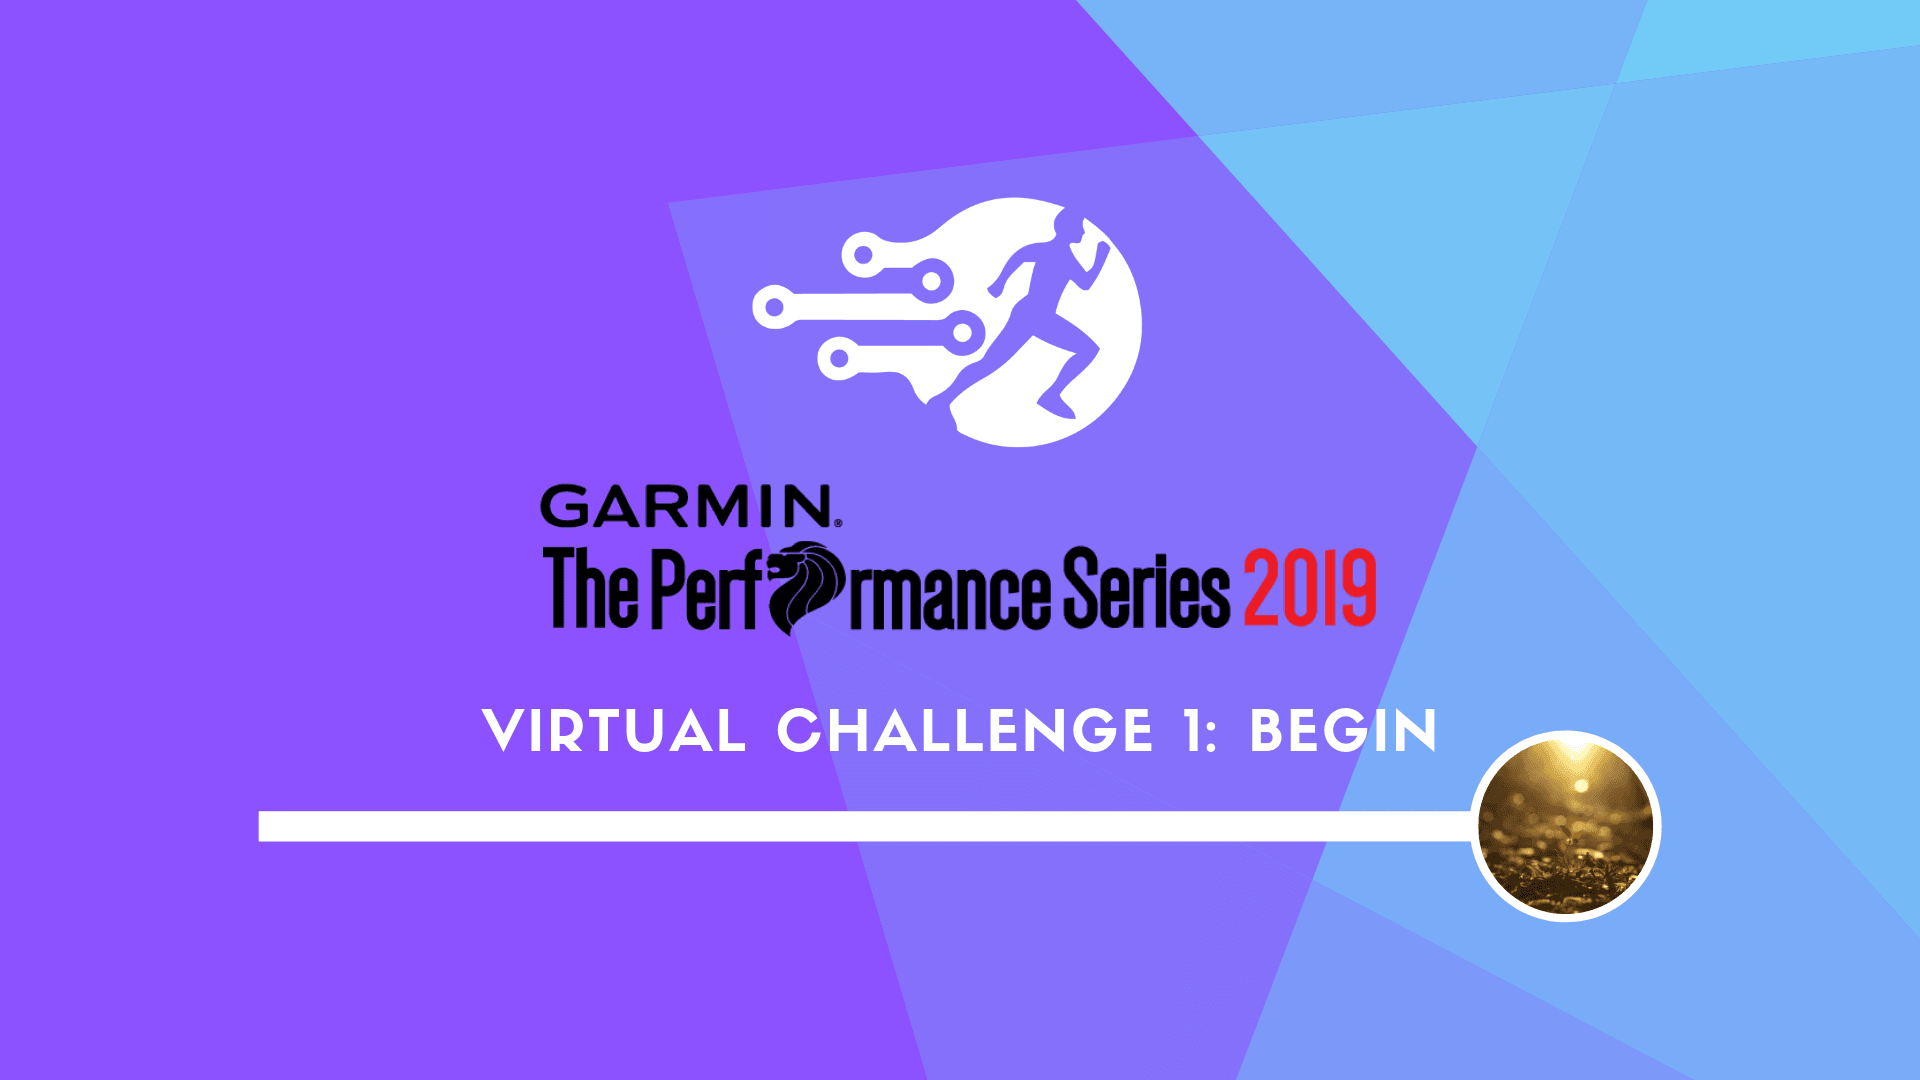 Logo of Garmin The Performance Series 2019 Virtual Challenge 1: Begin